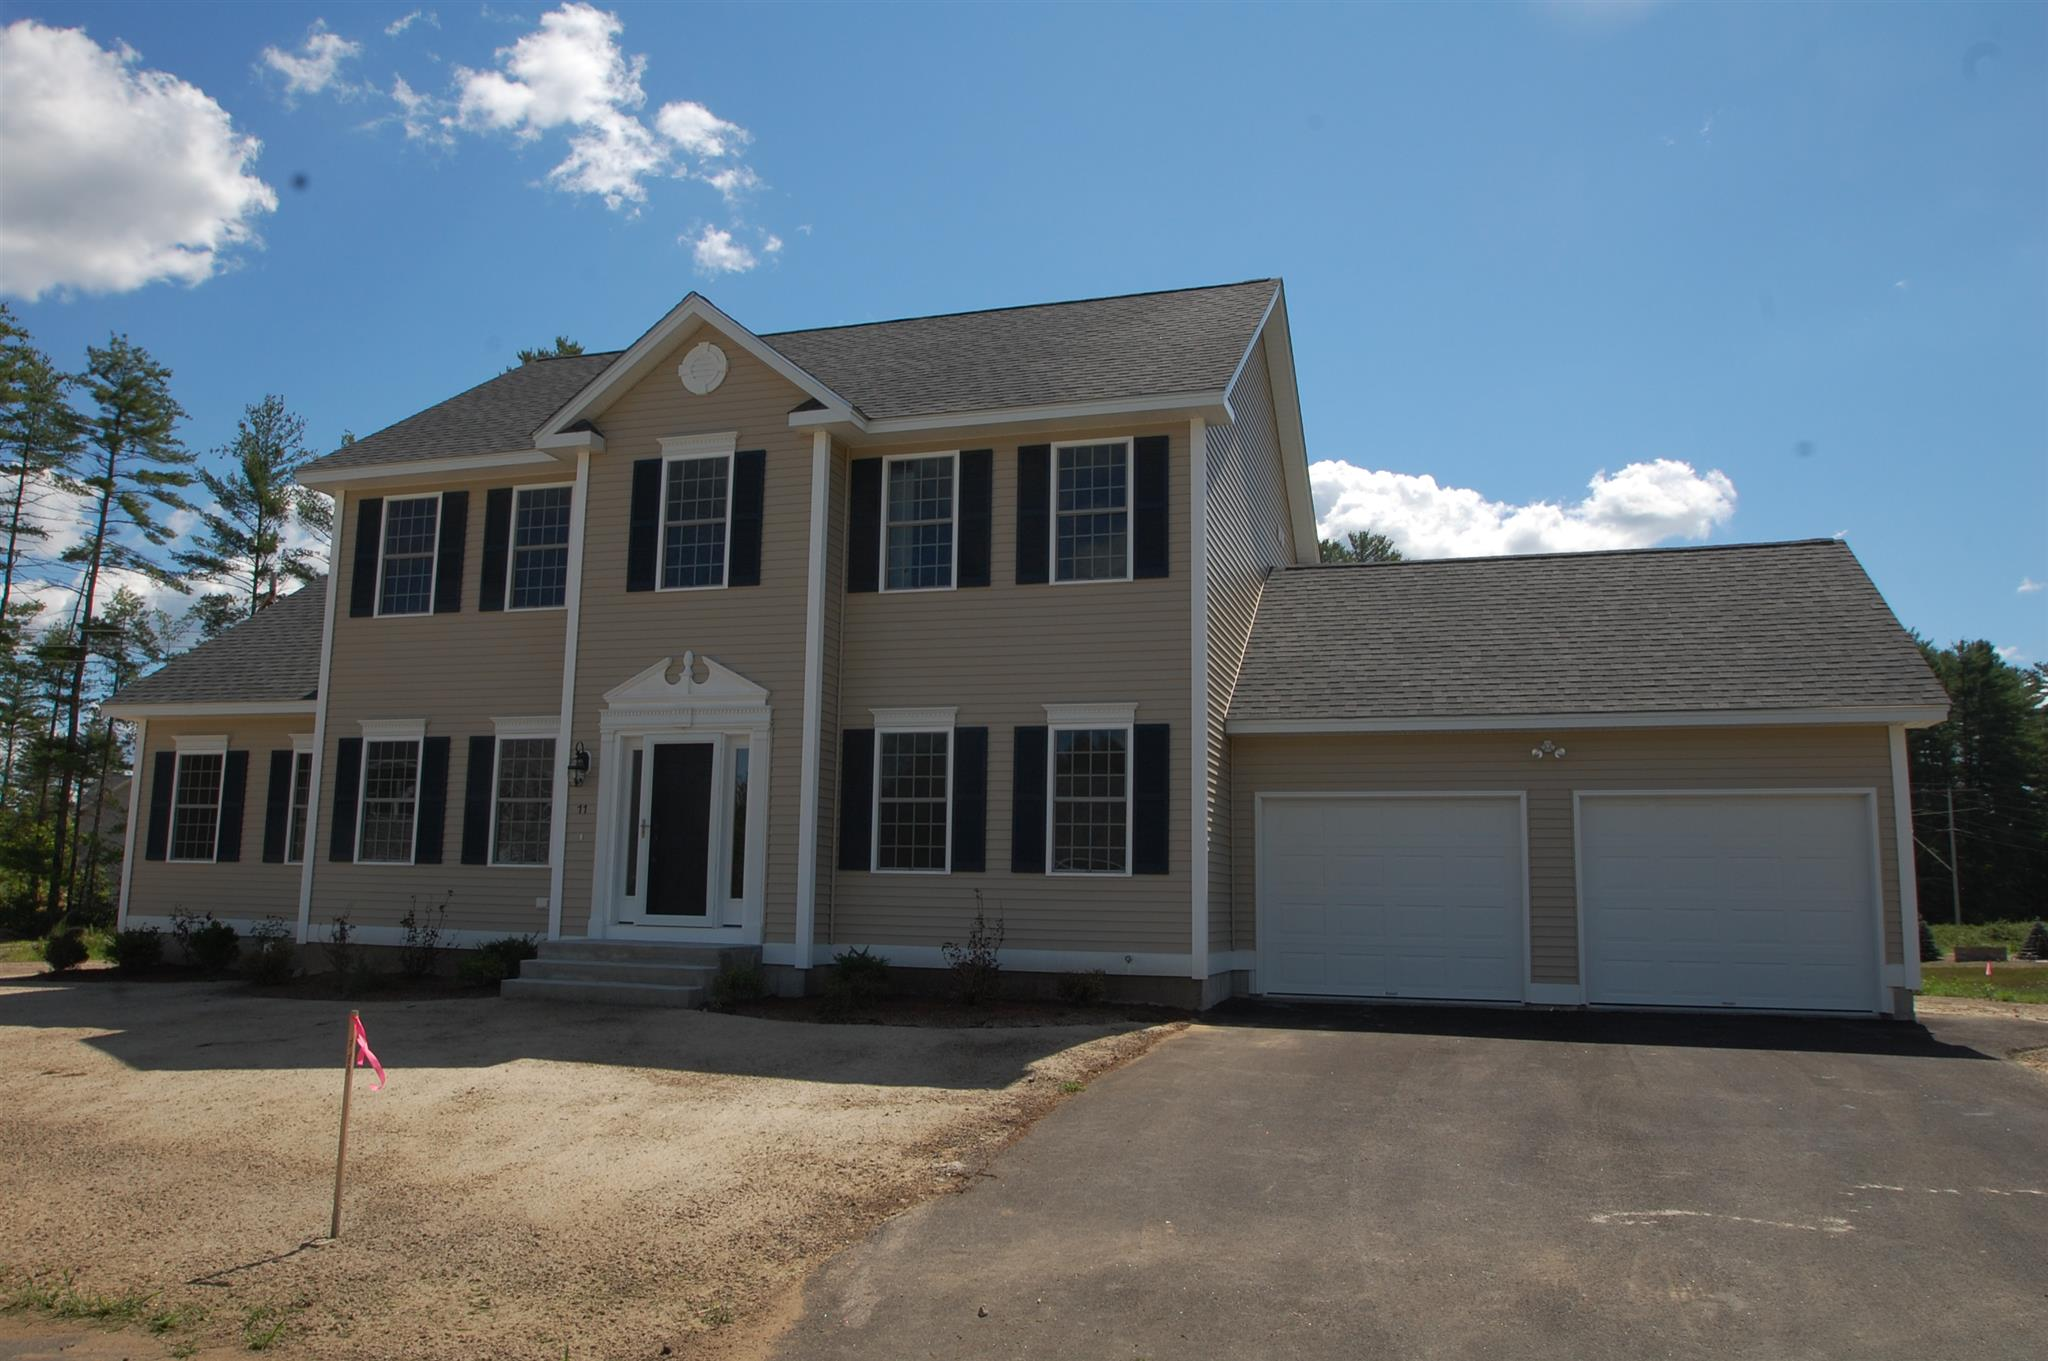 MLS 4769149: 11 Orchard Drive-Unit 18, Merrimack NH